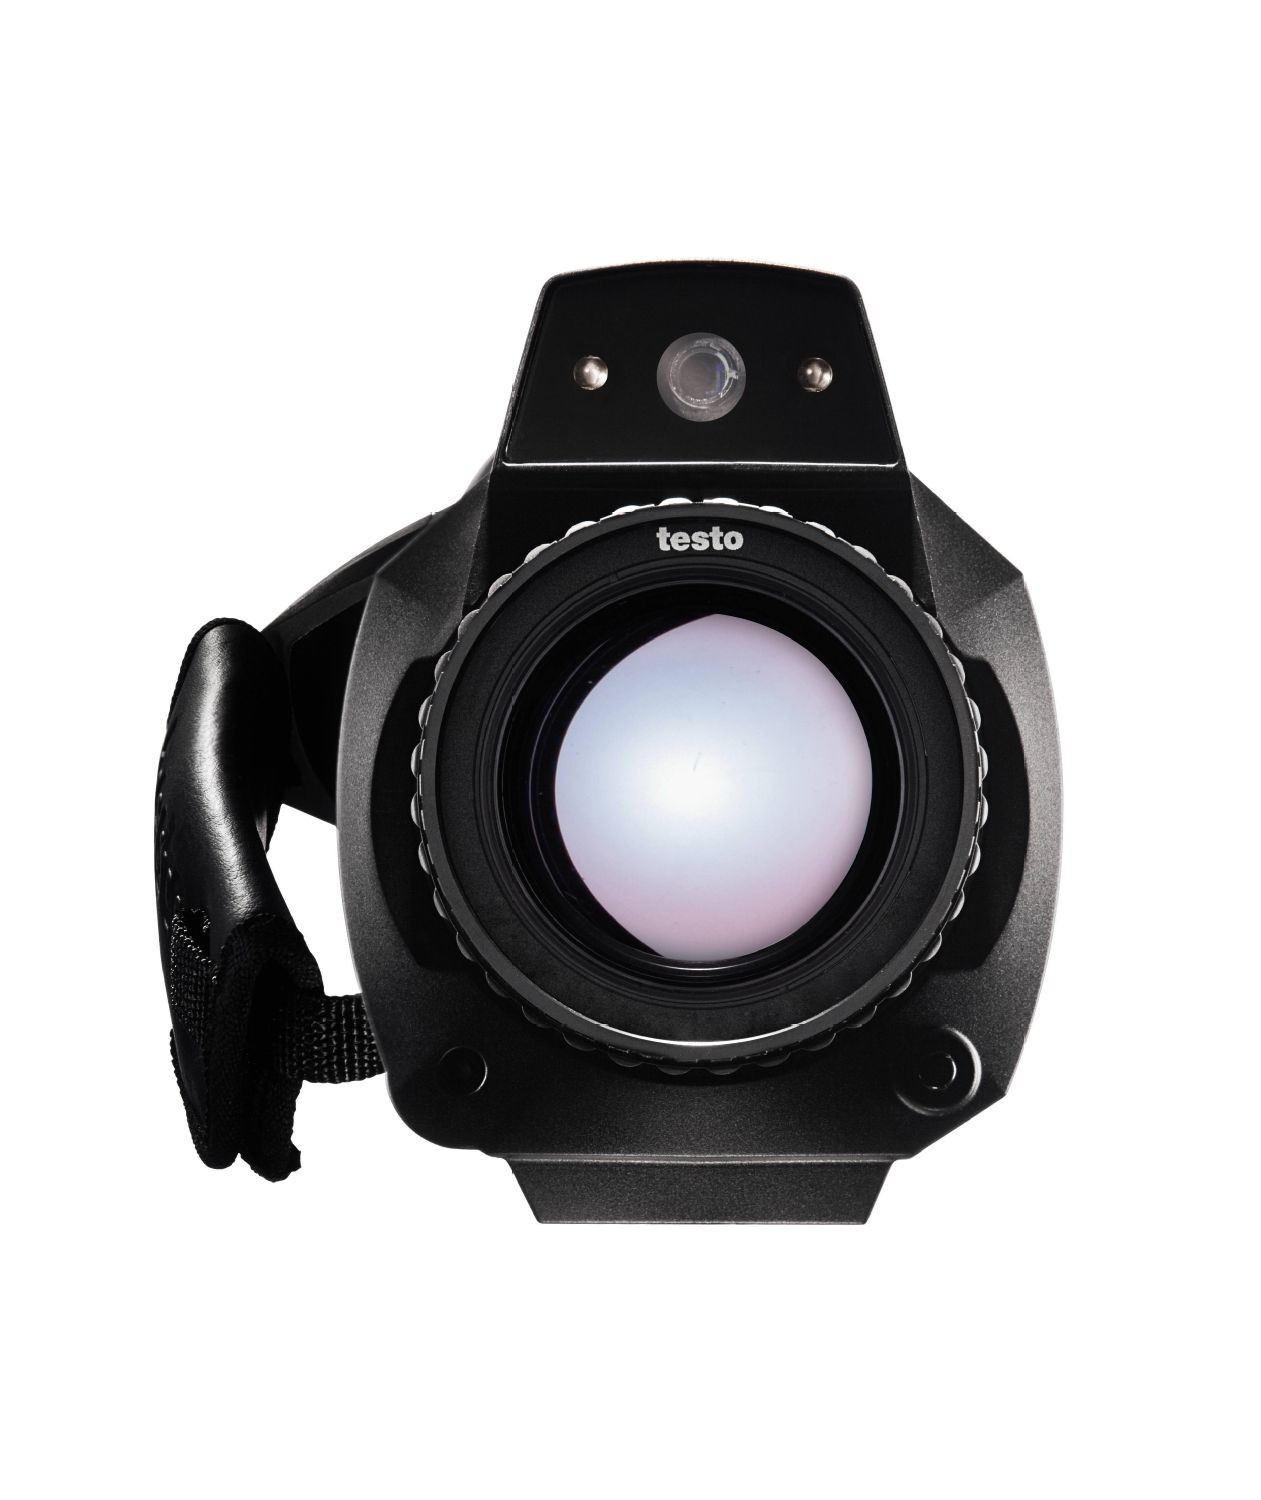 Testo 890 Set - Thermal Imager with Super-telephoto Lens and Two Lenses